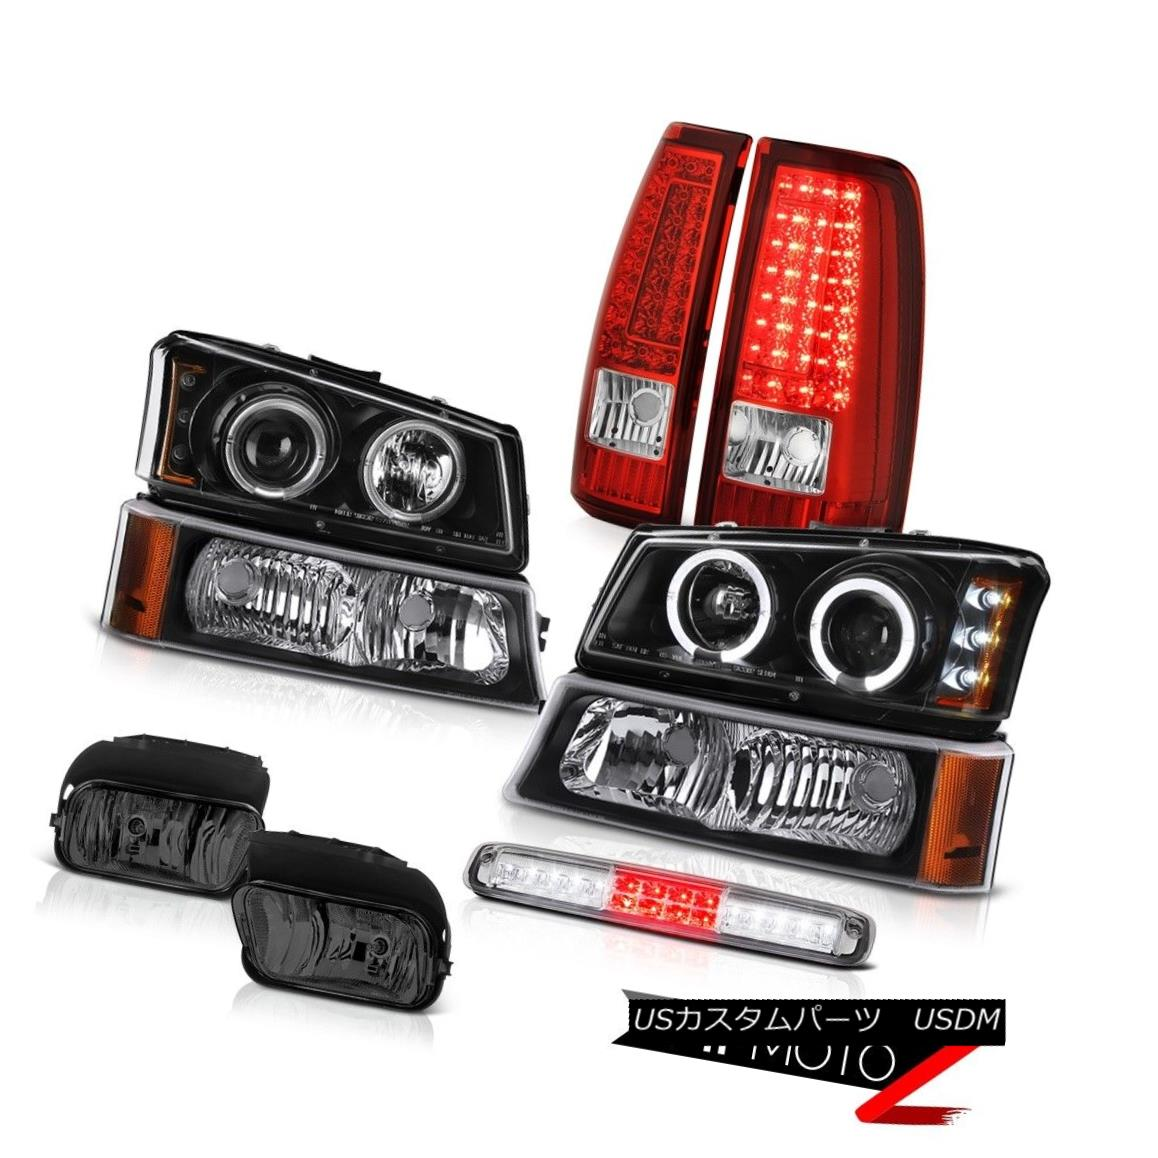 テールライト 03-06 Chevy Silverado Roof Cargo Light Fog Lights Tail Parking Lamp Headlights 03-06 Chevy Silverado Roof Cargoライトフォグライトテールパーキングランプヘッドライト